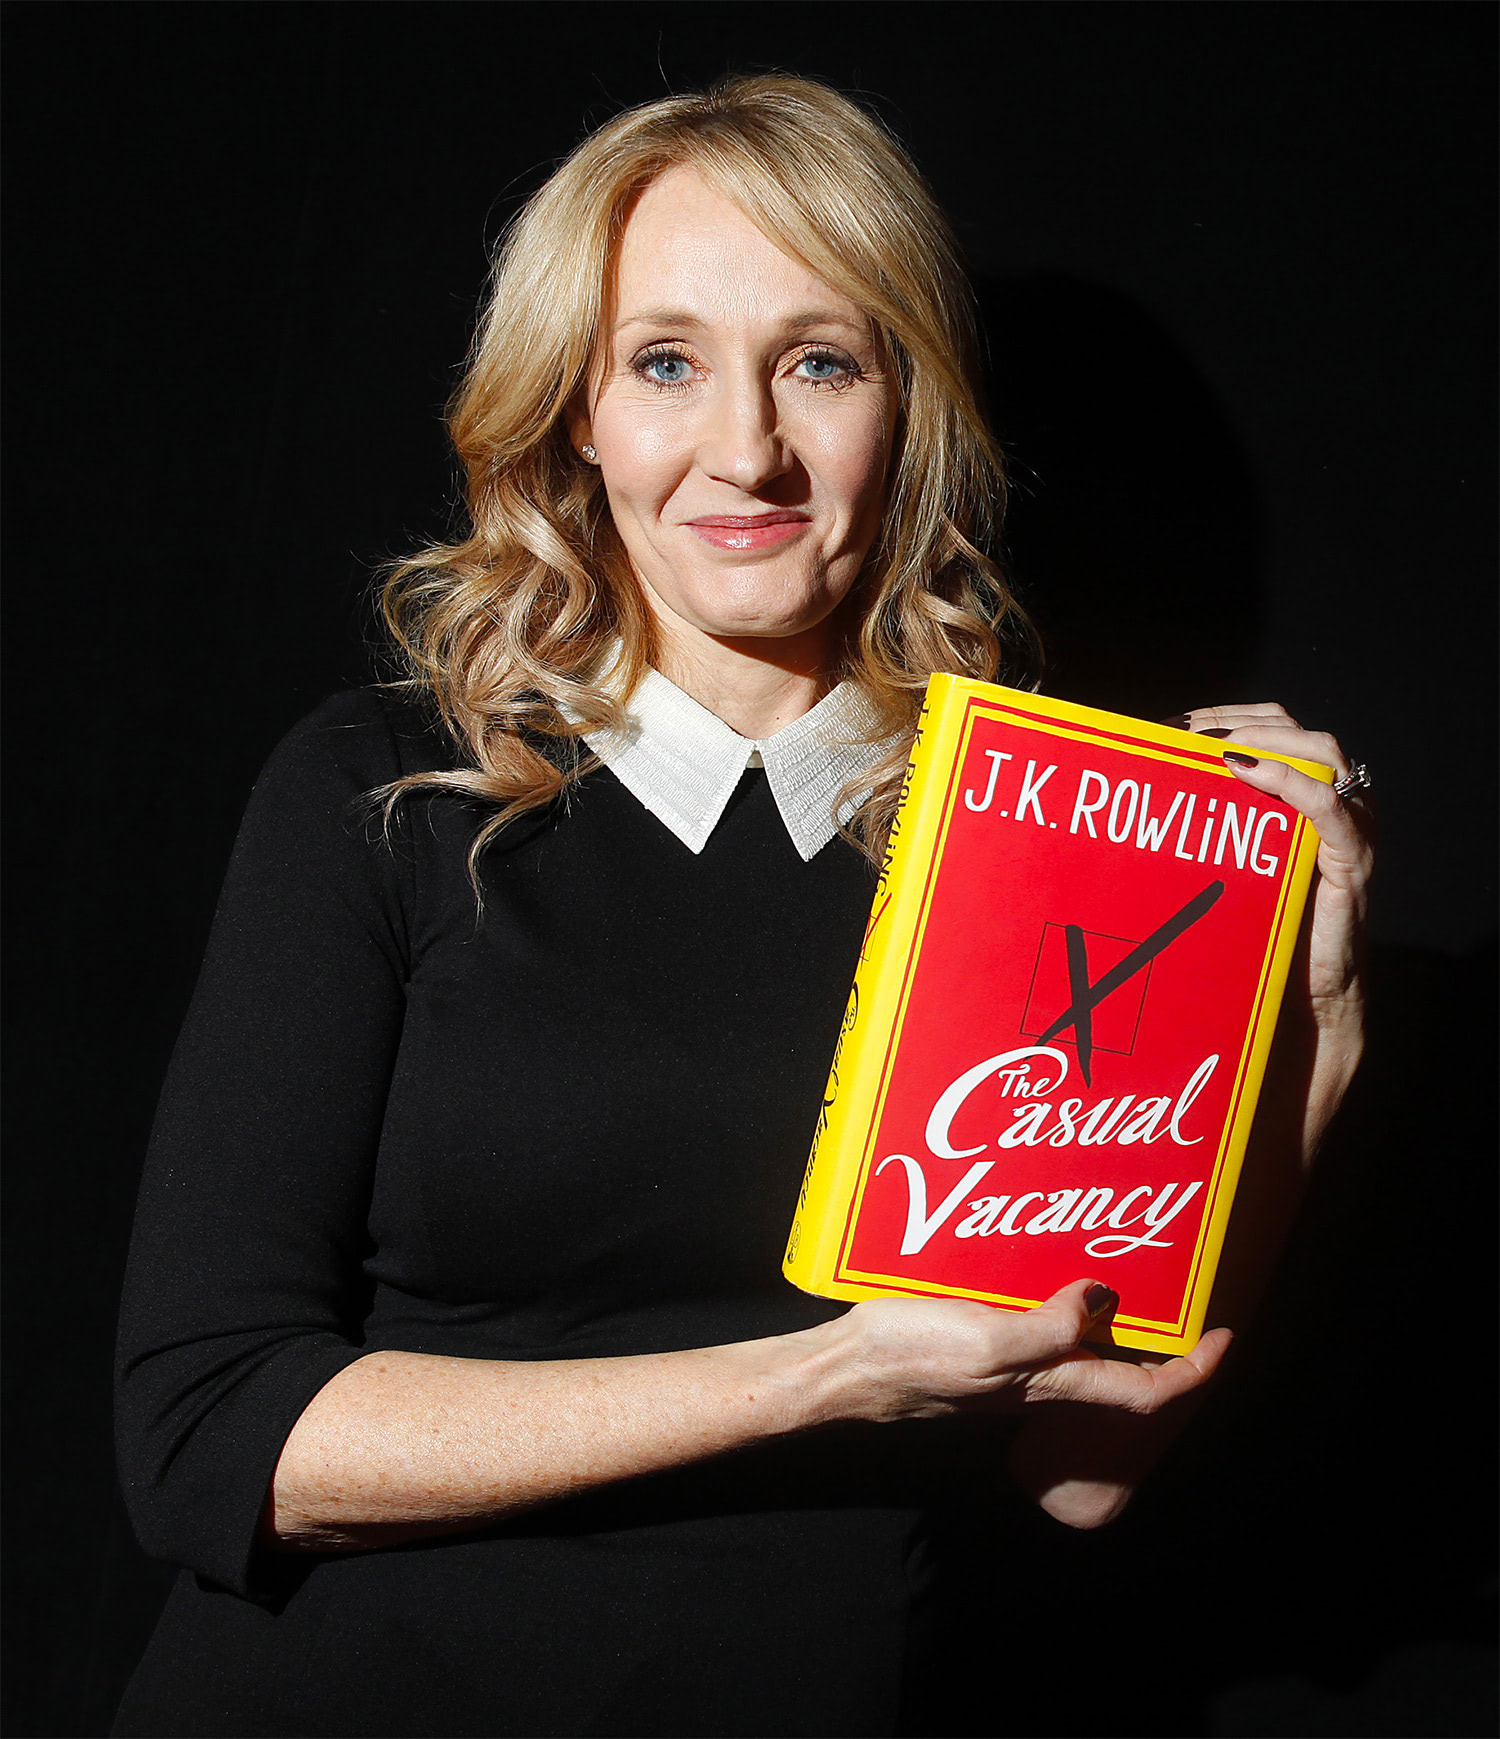 J.K. Rowling holds 'The Casual Vacancy'